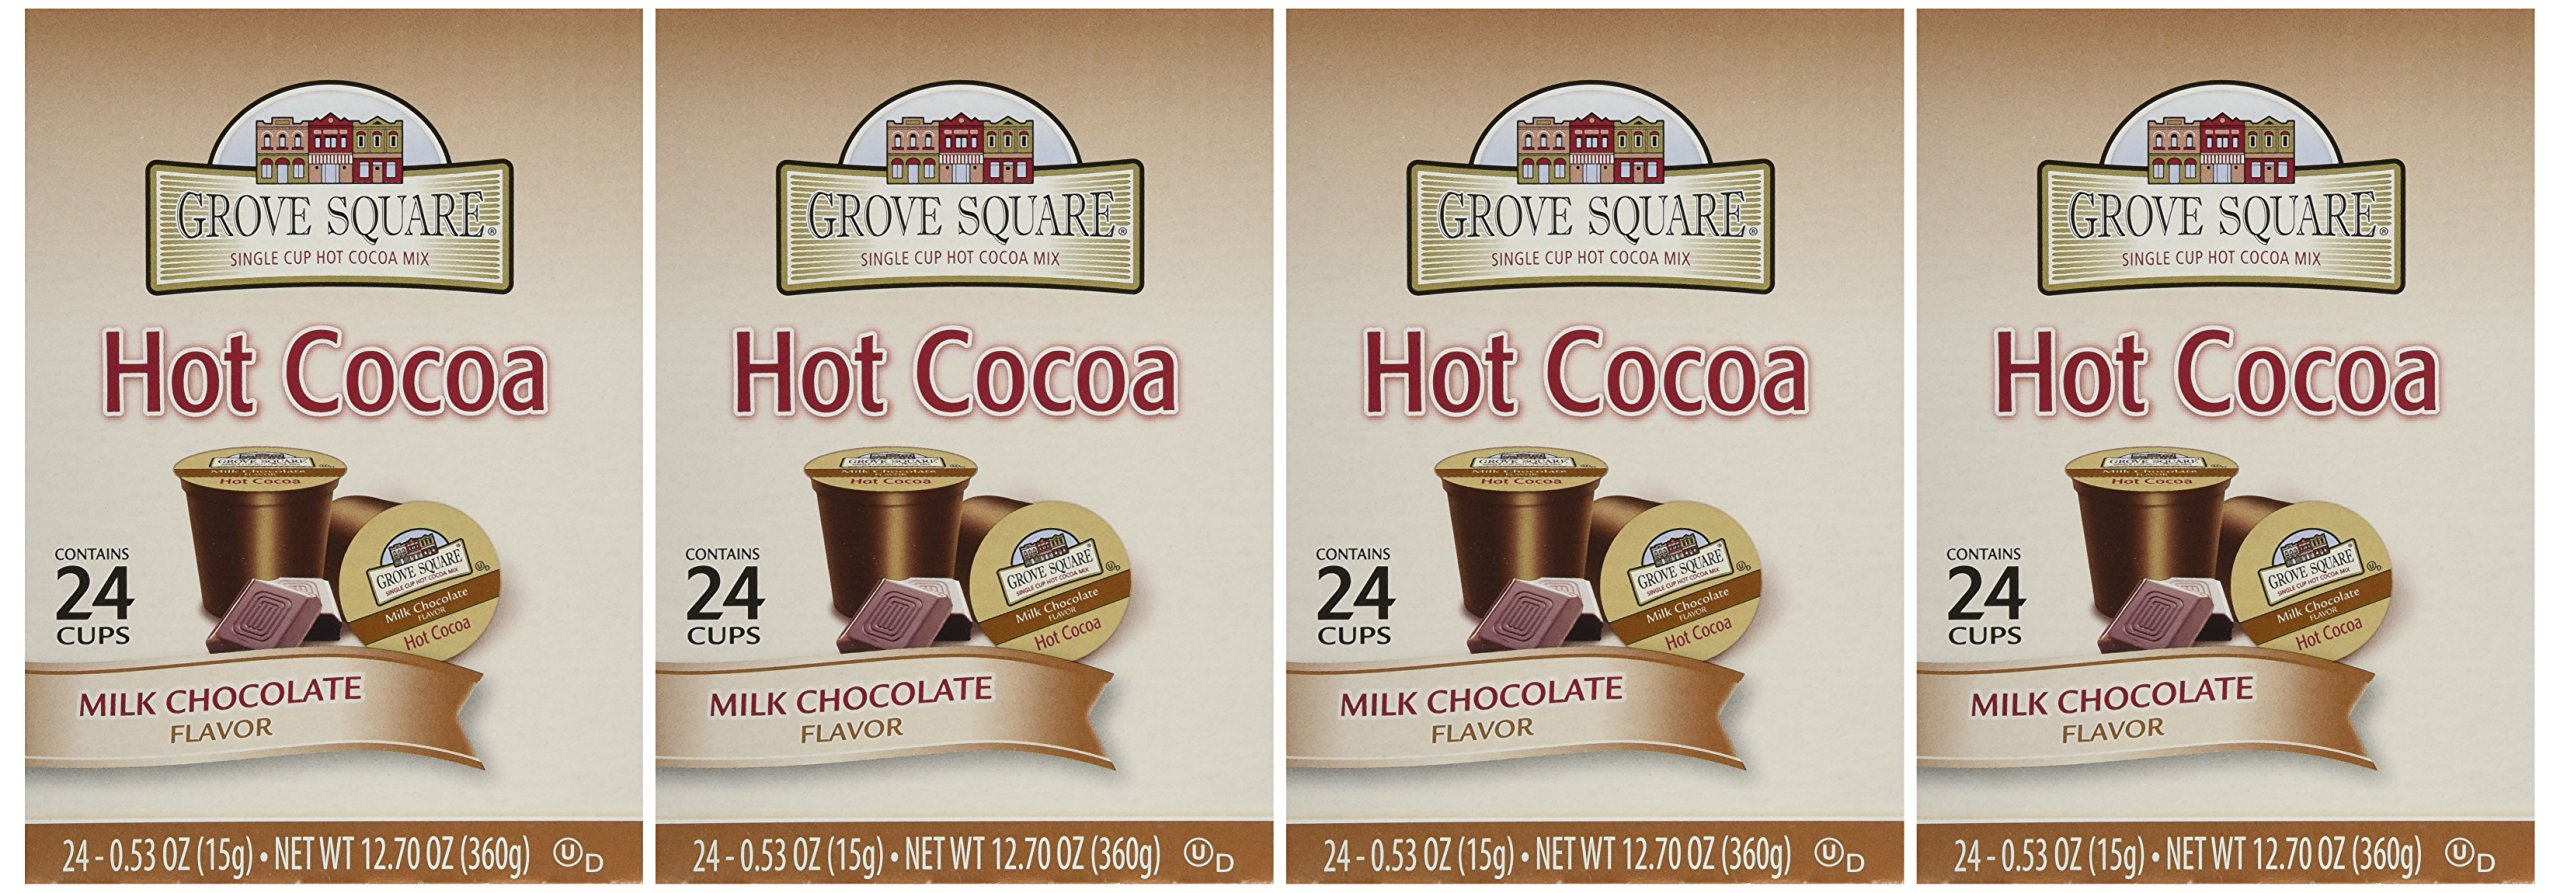 Grove Square Milk Chocolate Hot Cocoa 96 Count